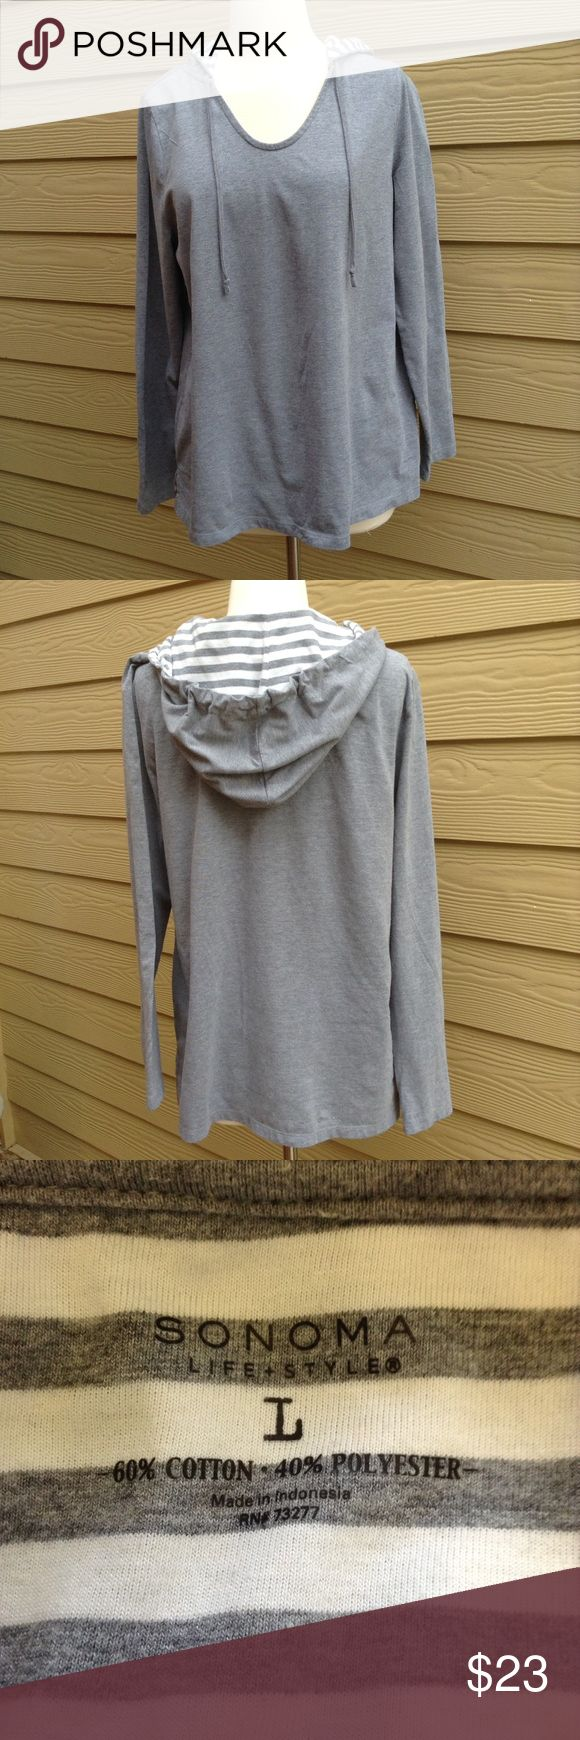 "Sonoma Gray Hoodie SALE!!! Bust is 42"" and length is 26"",  great condition Sonoma Tops"